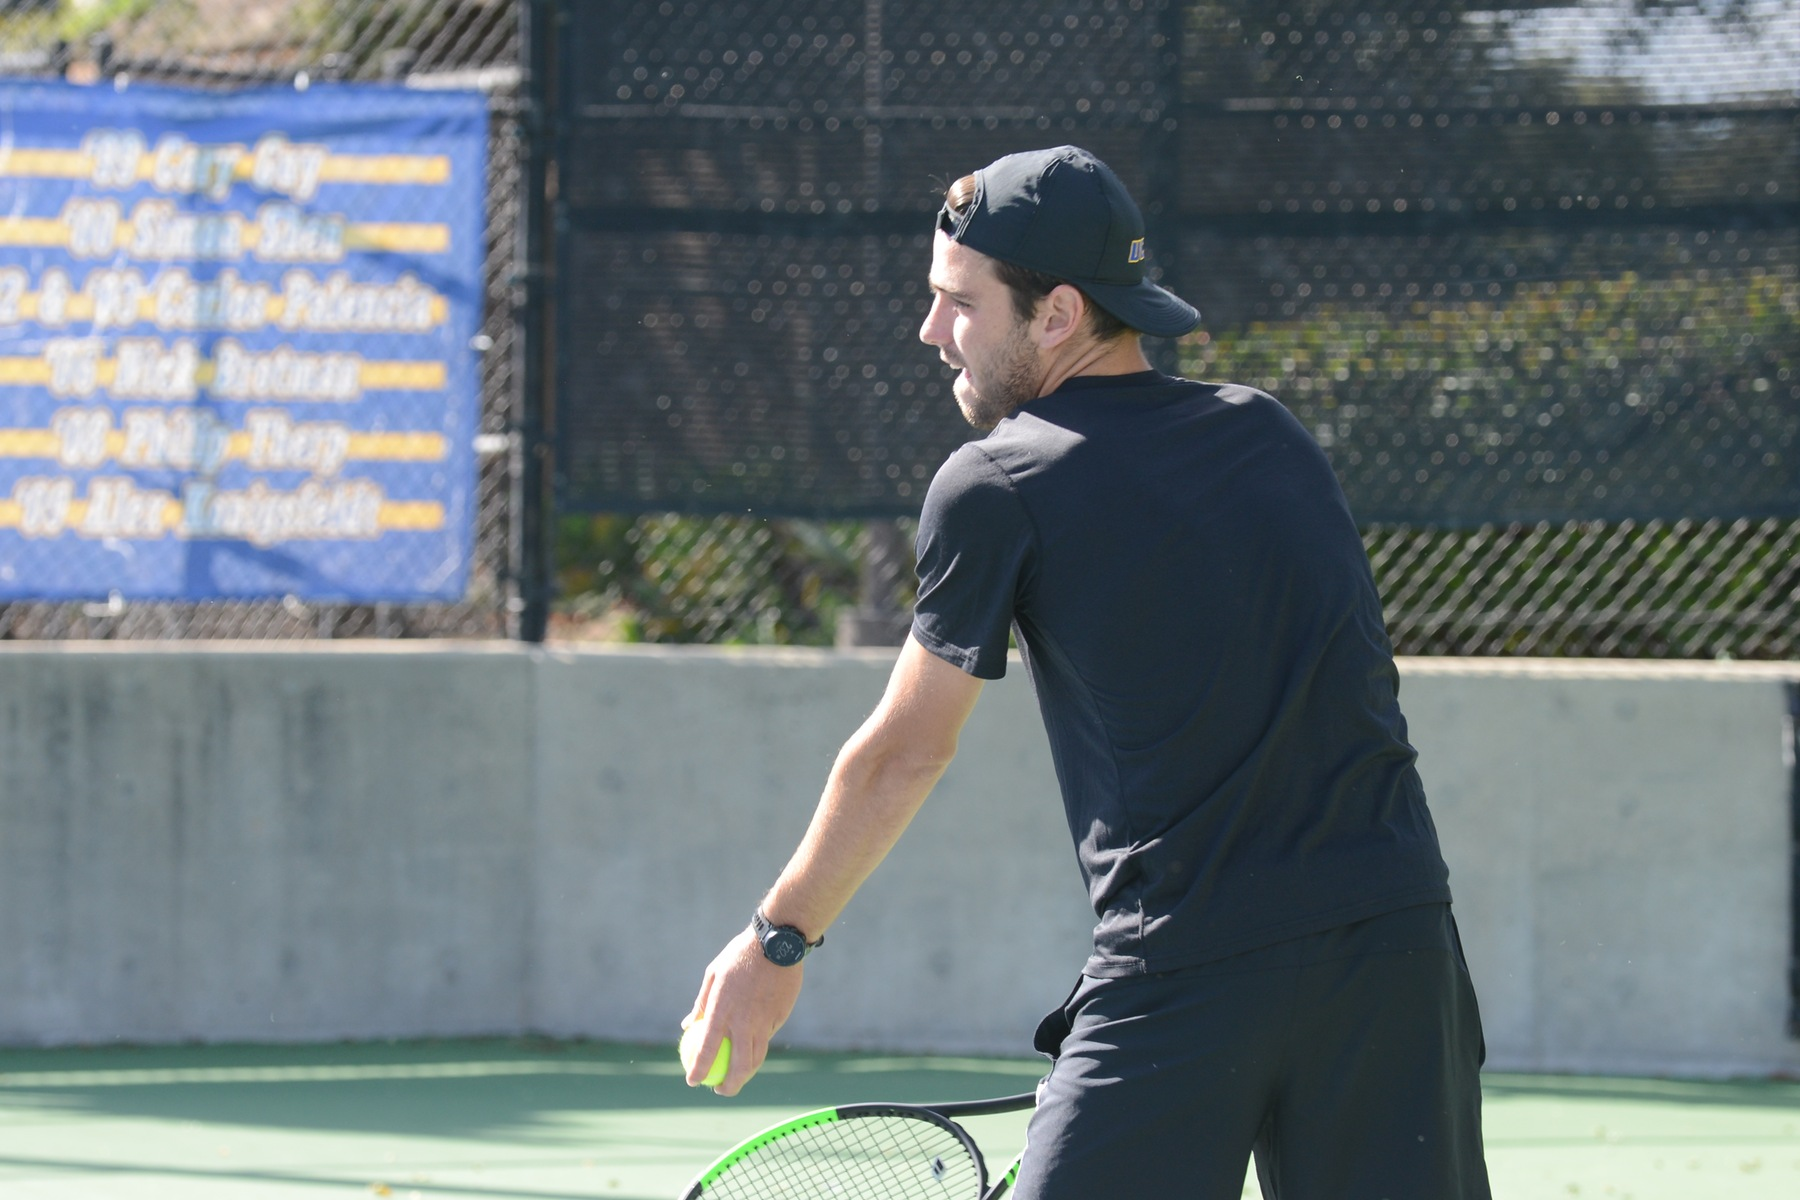 Nicolas Moreno de Alboran (photo by Eric Isaacs) pulled out a 6-2, 4-6, 6-3 victory on Sunday continuing his six-game singles streak.